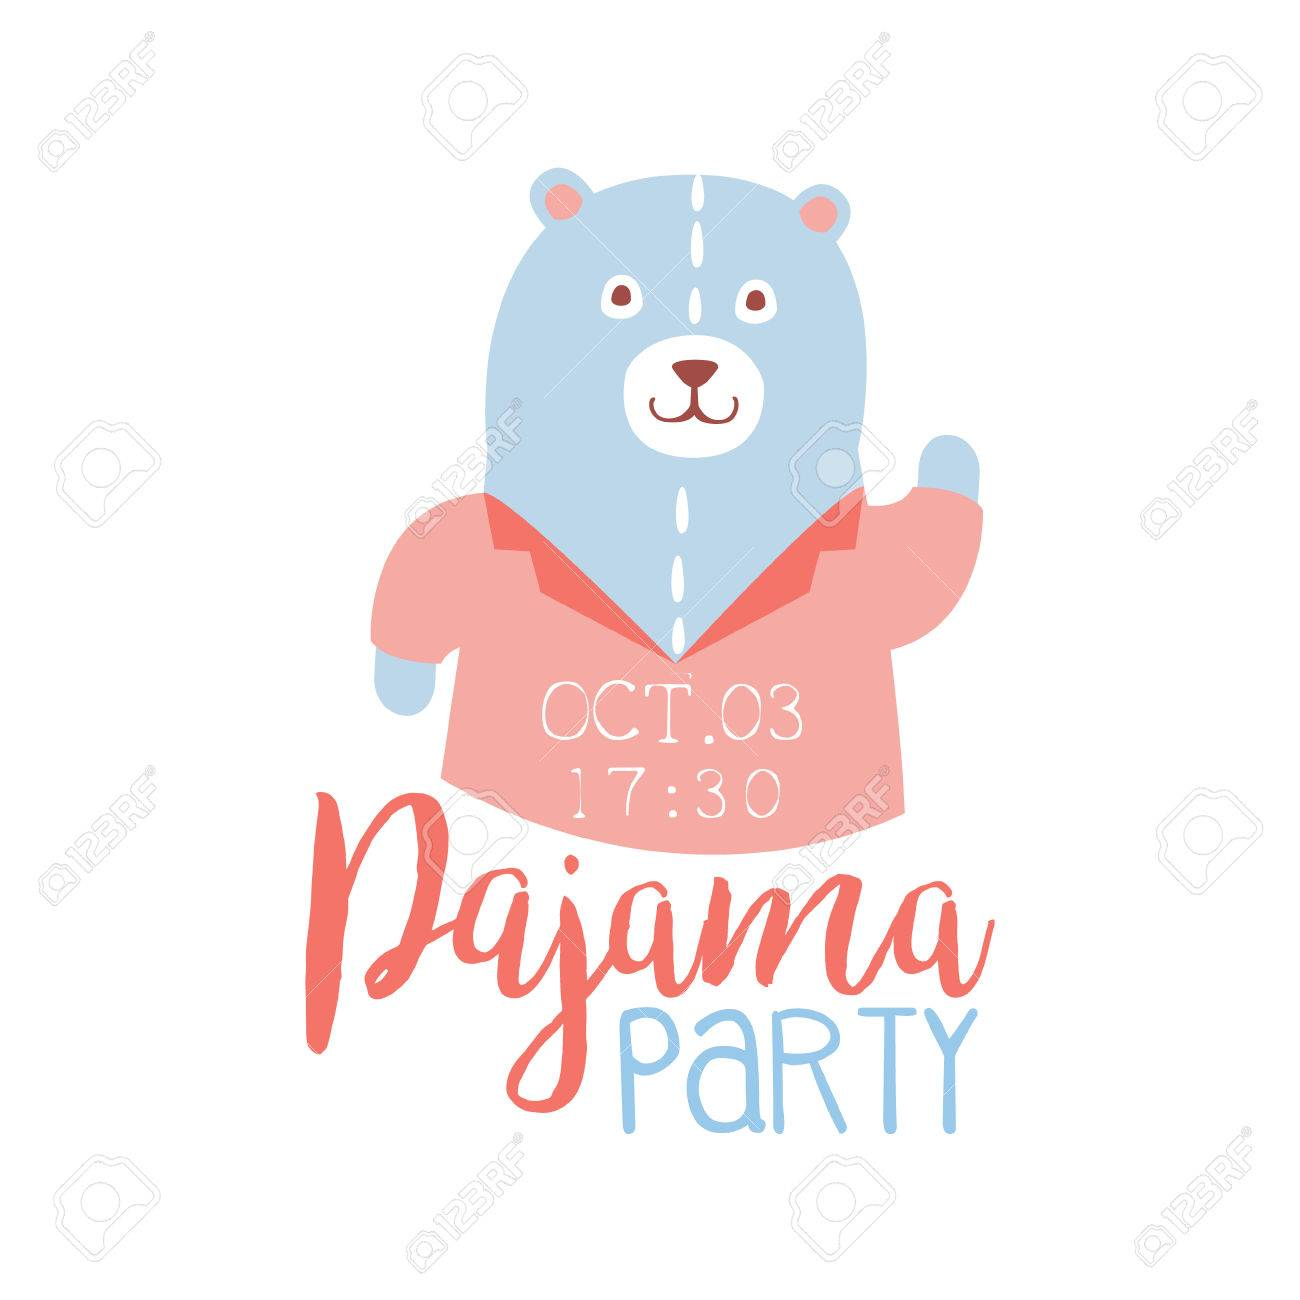 Girly Pajama Party Invitation Card Template With Teddy Bear ...